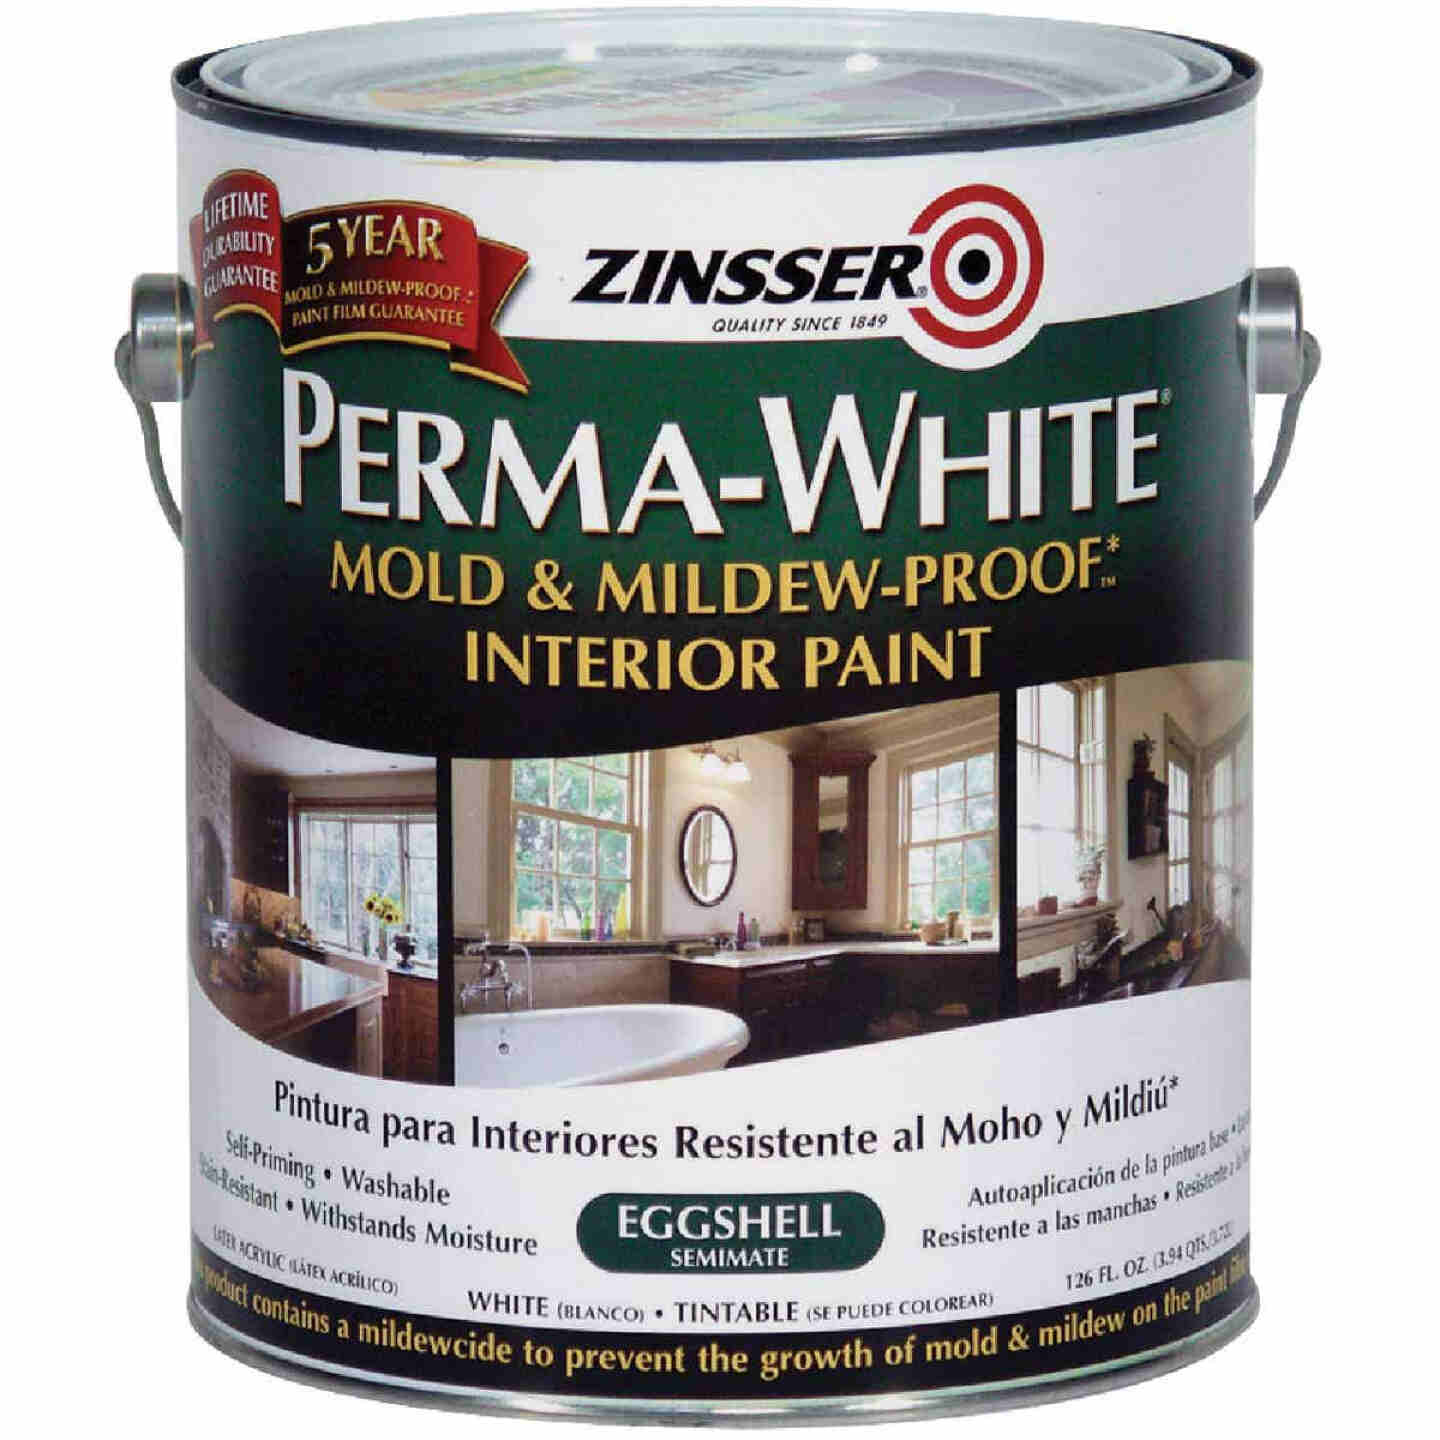 Zinsser Perma-White White-Tintable Eggshell Gallon Mildew Paint Image 1